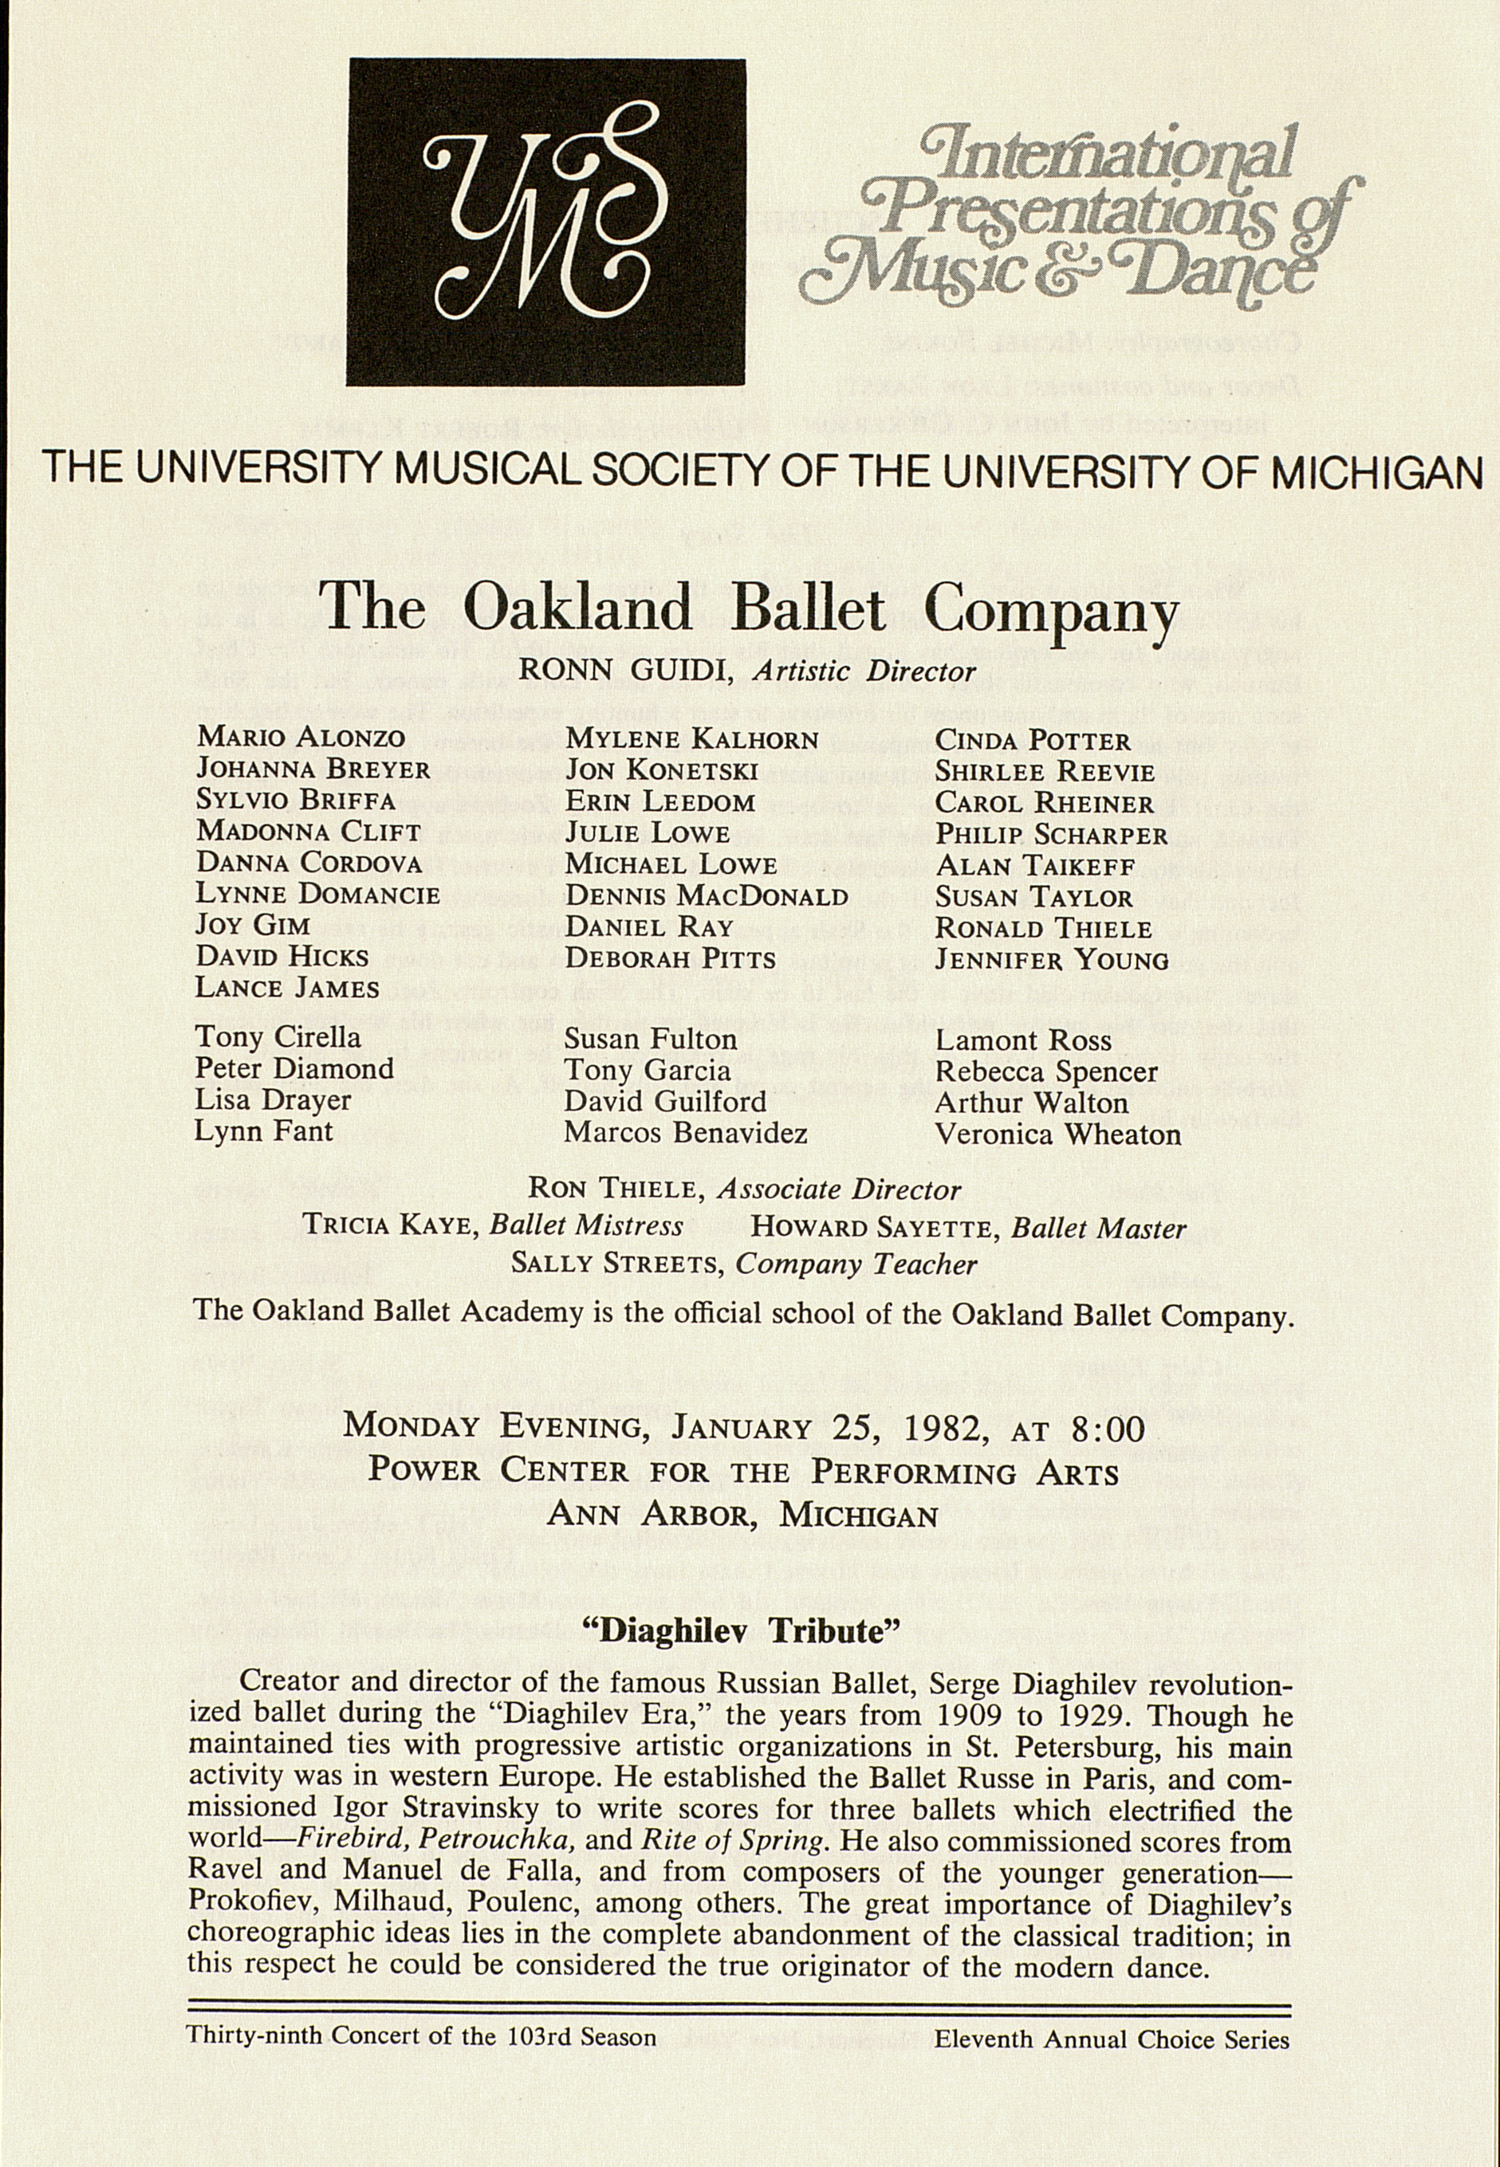 UMS Concert Program, January 25, 1982: International Presentations Of Music & Dance -- The Oakland Ballet Company image